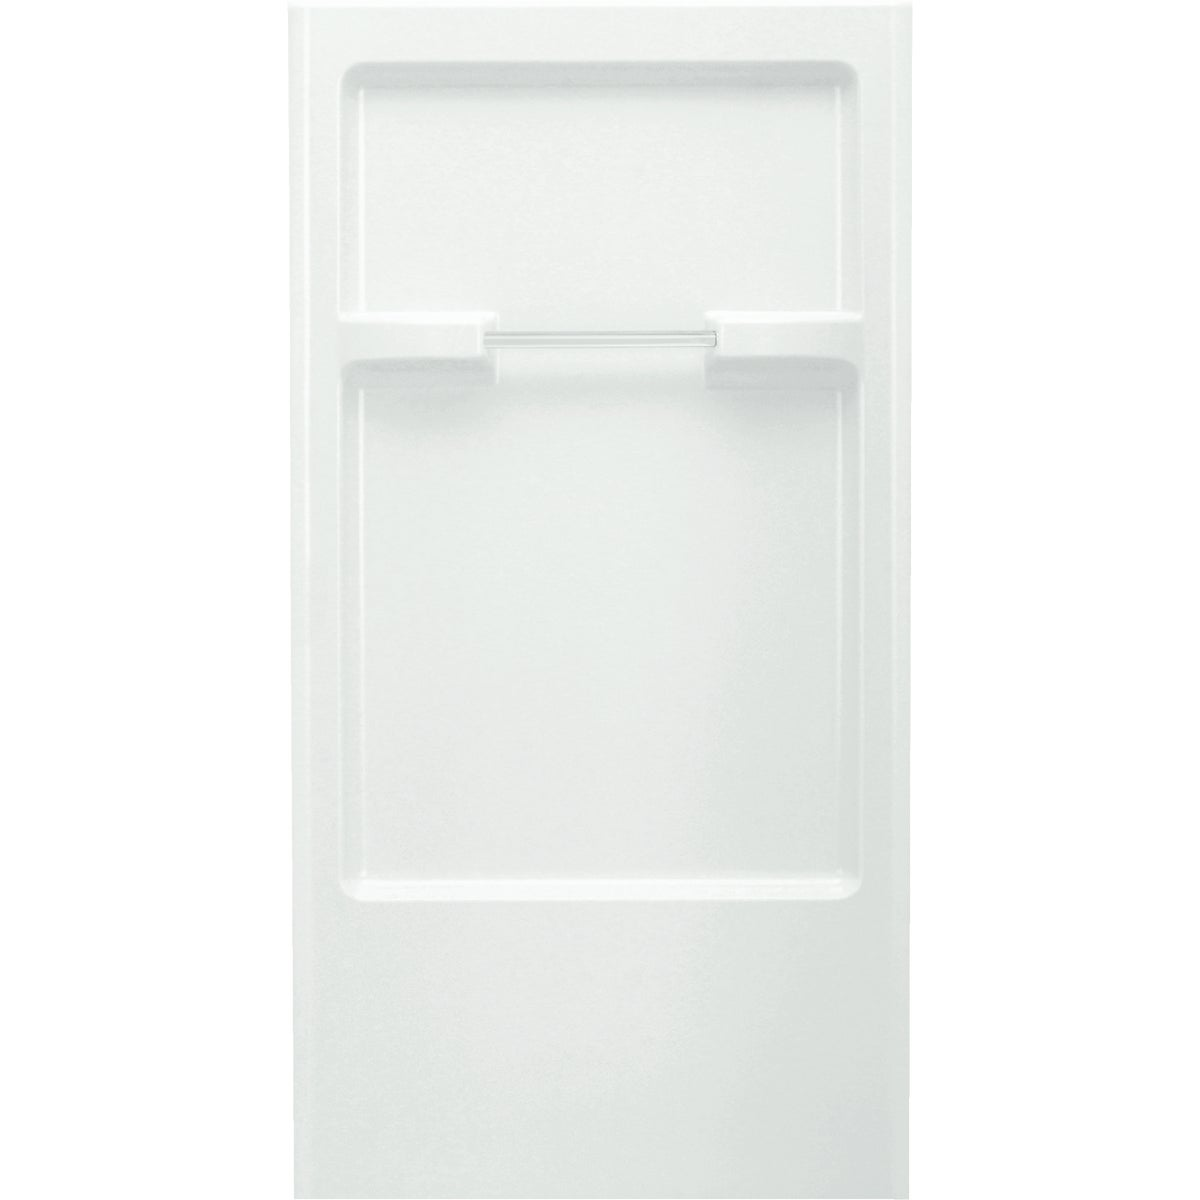 "36"" WHITE BACKWALL - 62022100-0 by Sterling Pbg/vikrell"